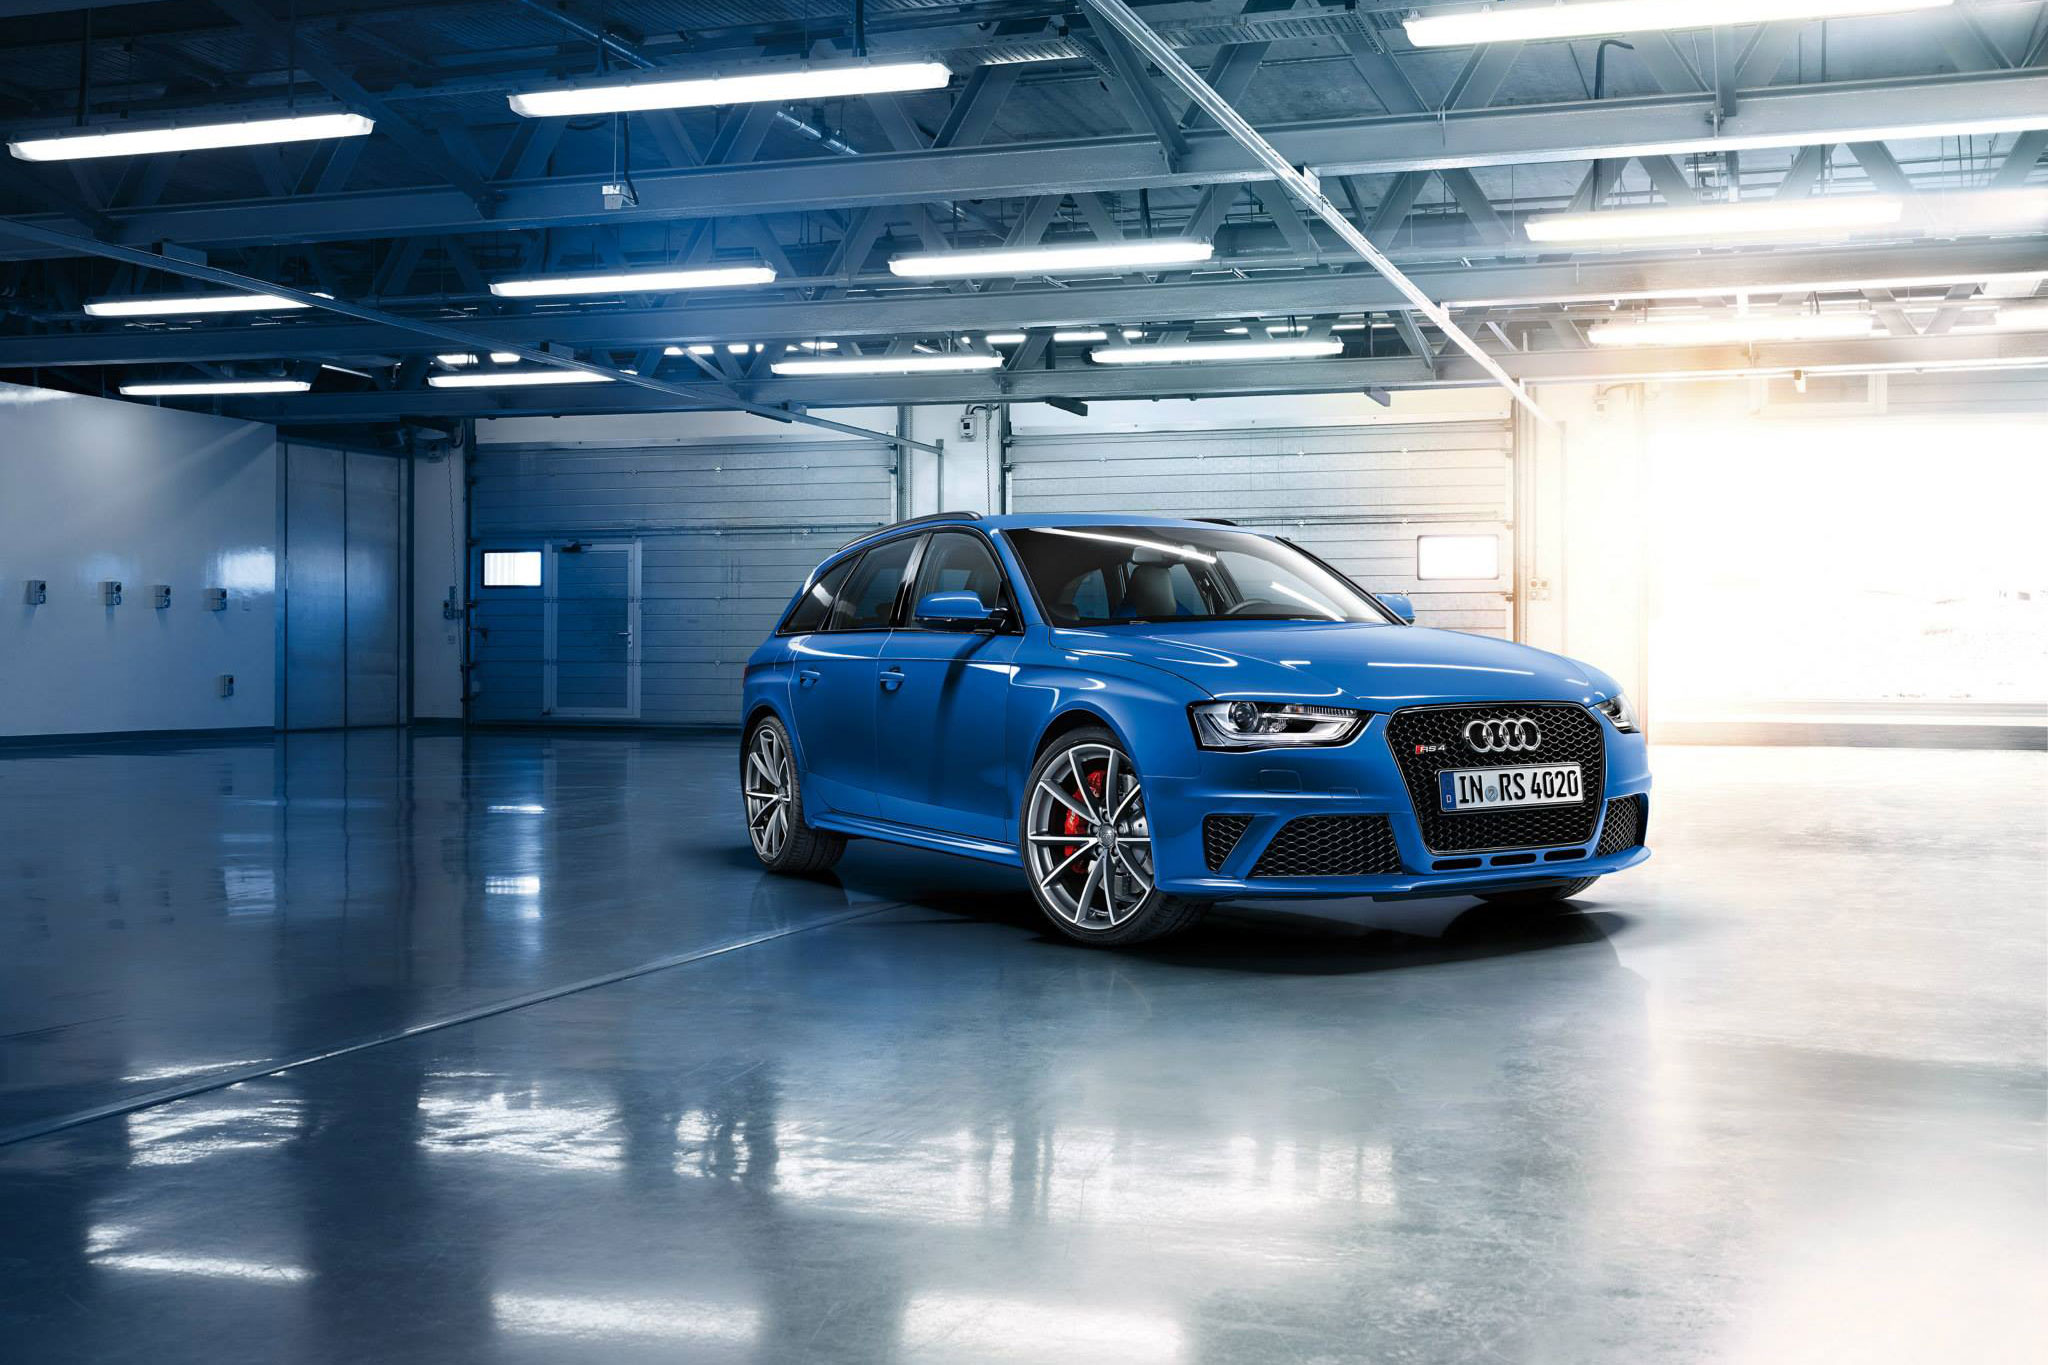 2019 Audi RS4 Avant Nogaro selection photo - 6